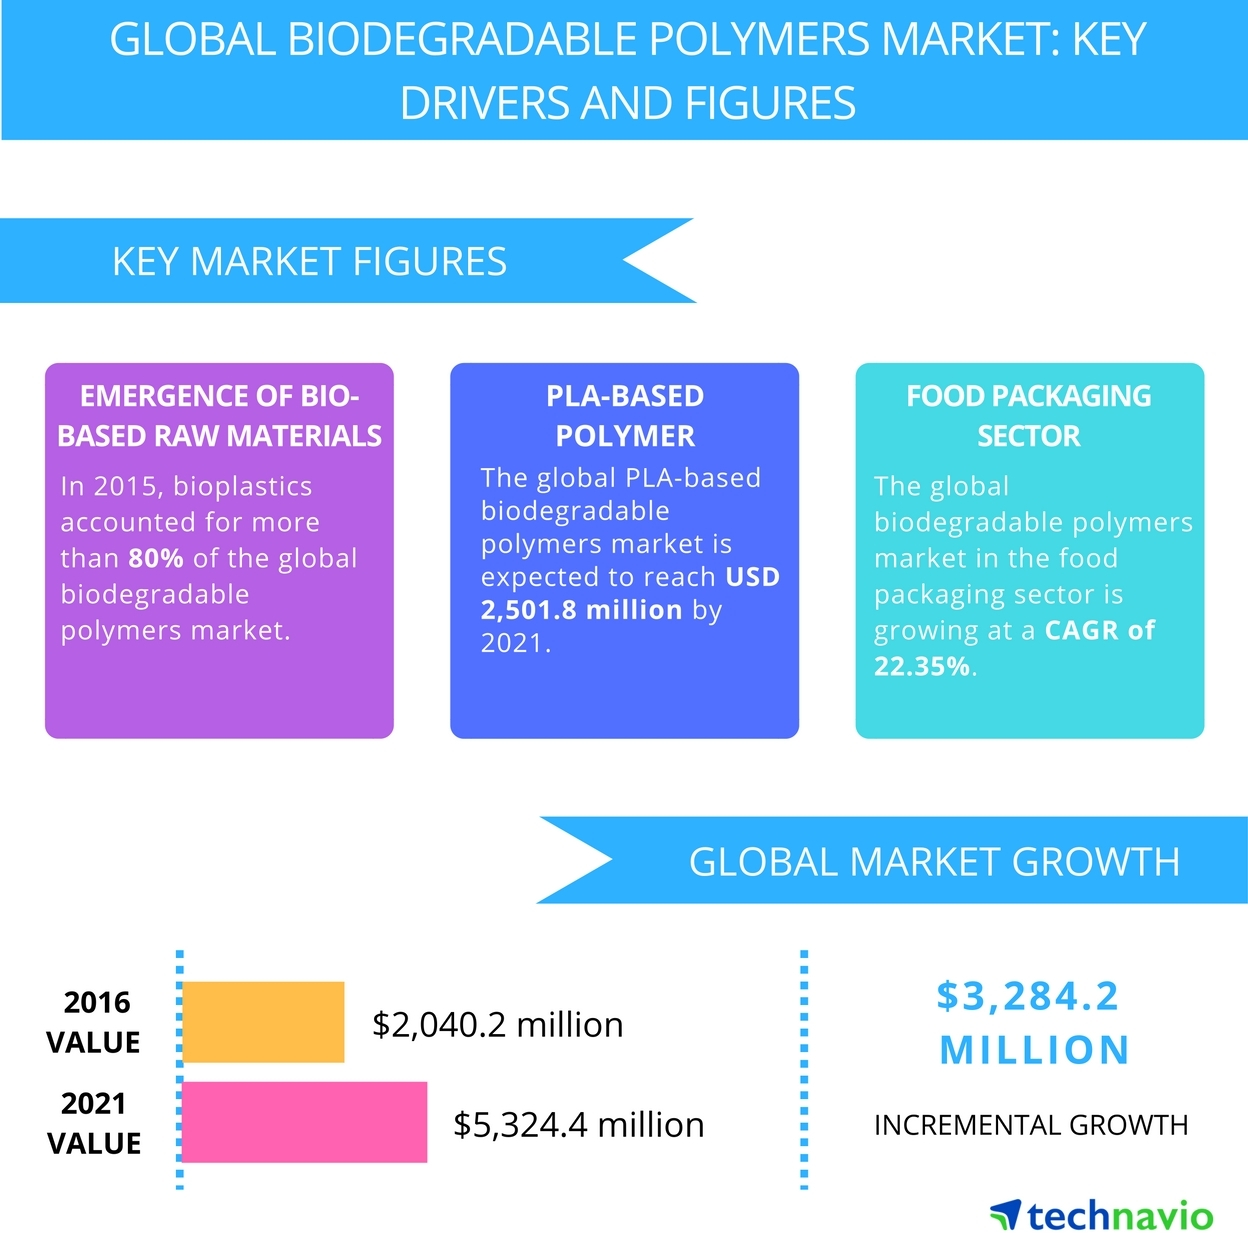 Biodegradable Polymers - Market Drivers and Forecast From Technavio